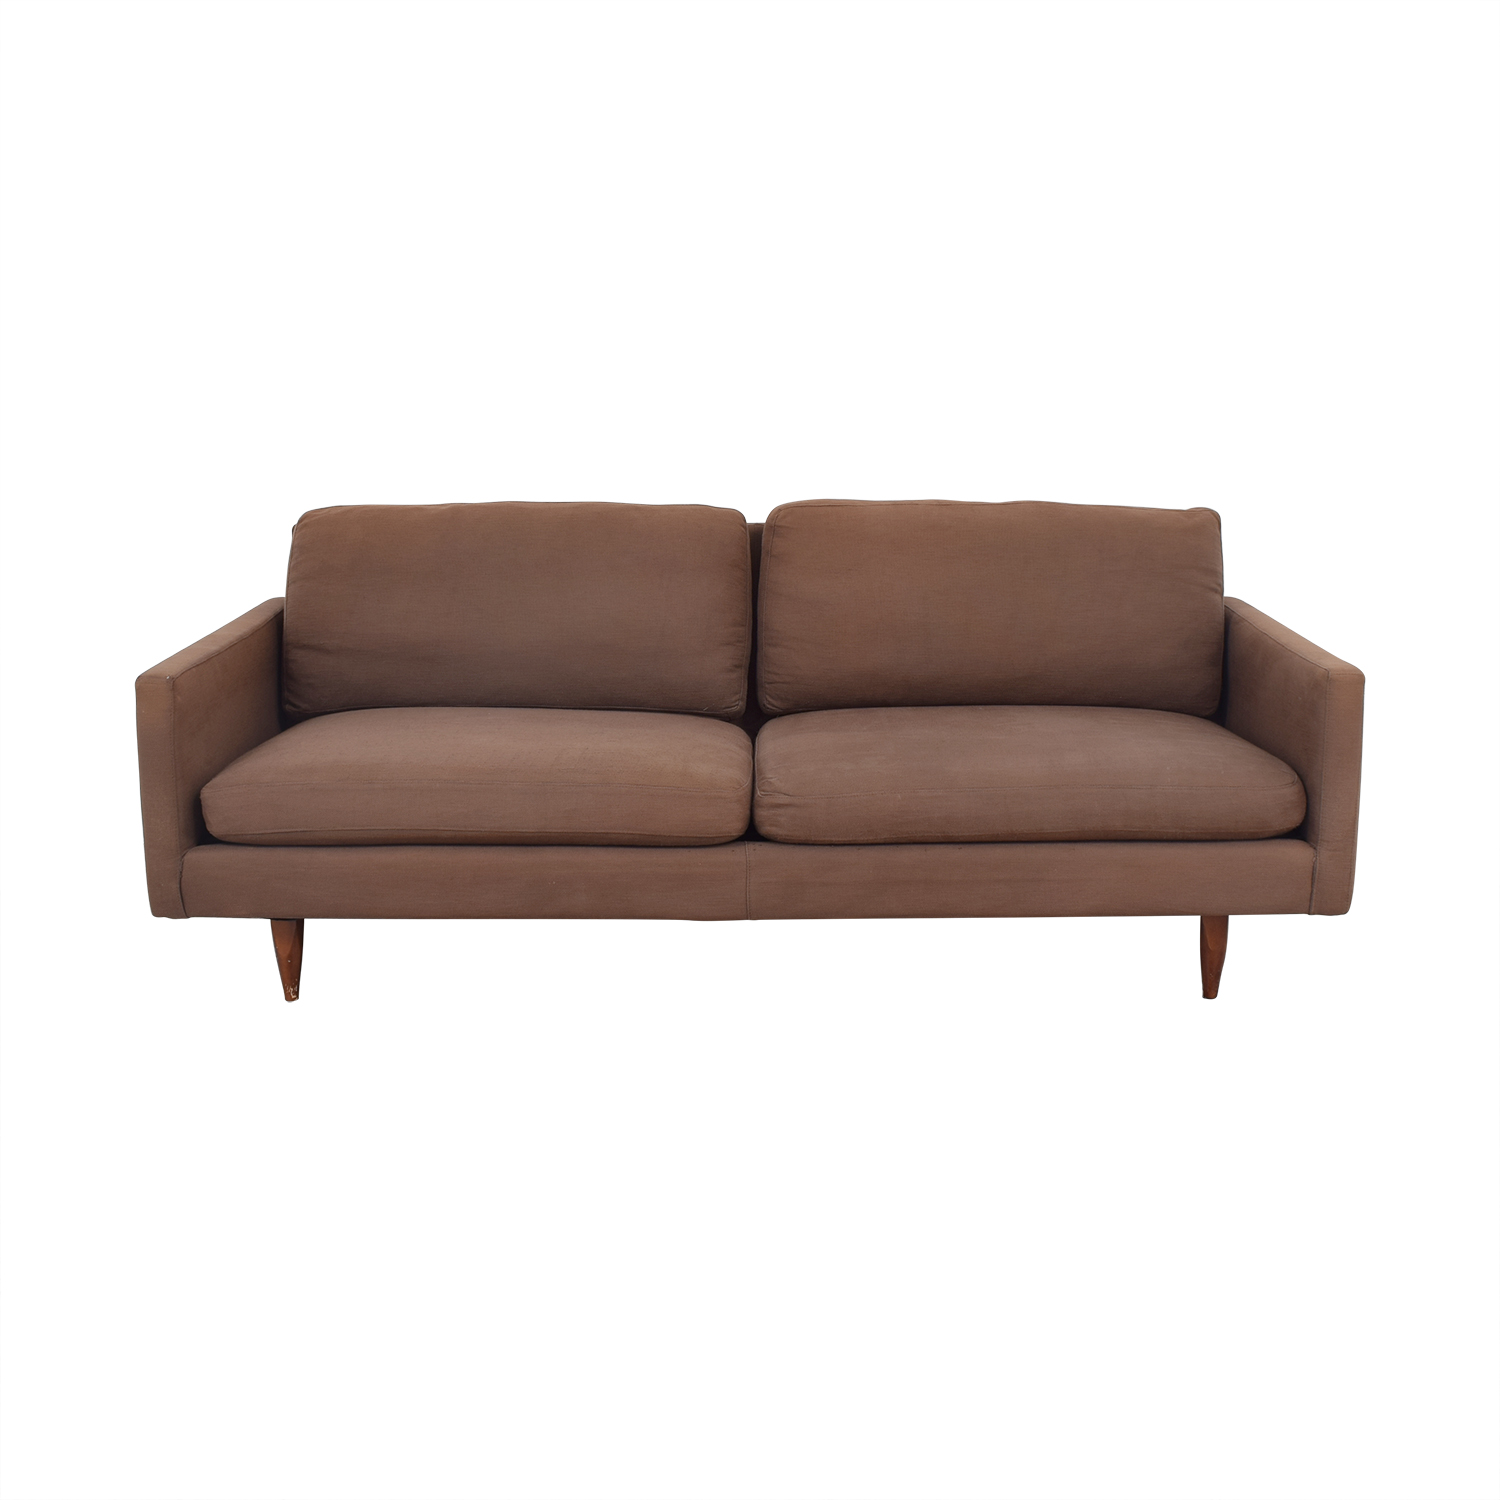 Room & Board Jasper Sofa / Sofas